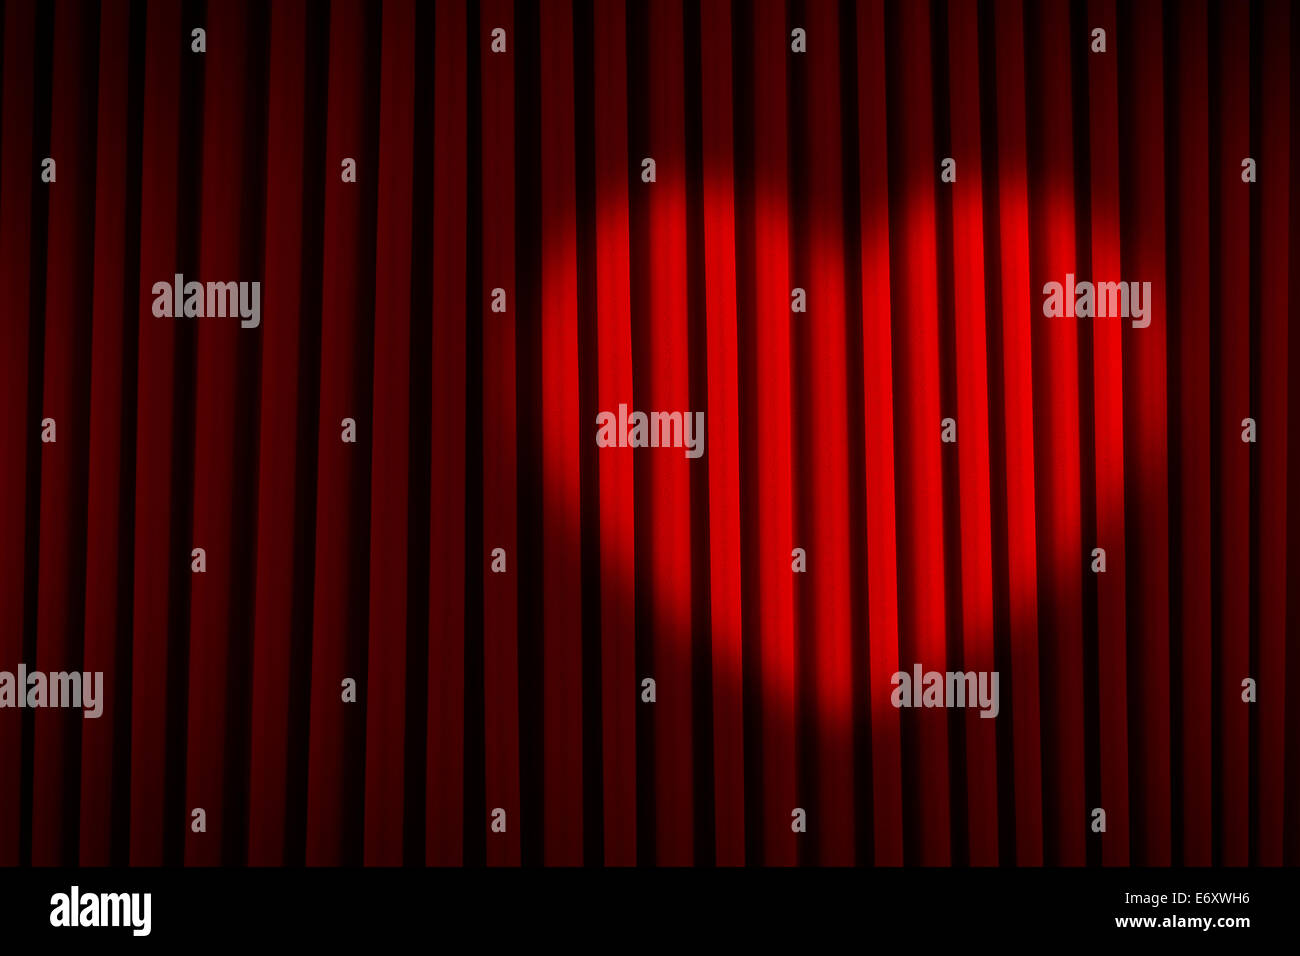 Red Velvet Stage Curtain with Heart Spotlight. - Stock Image